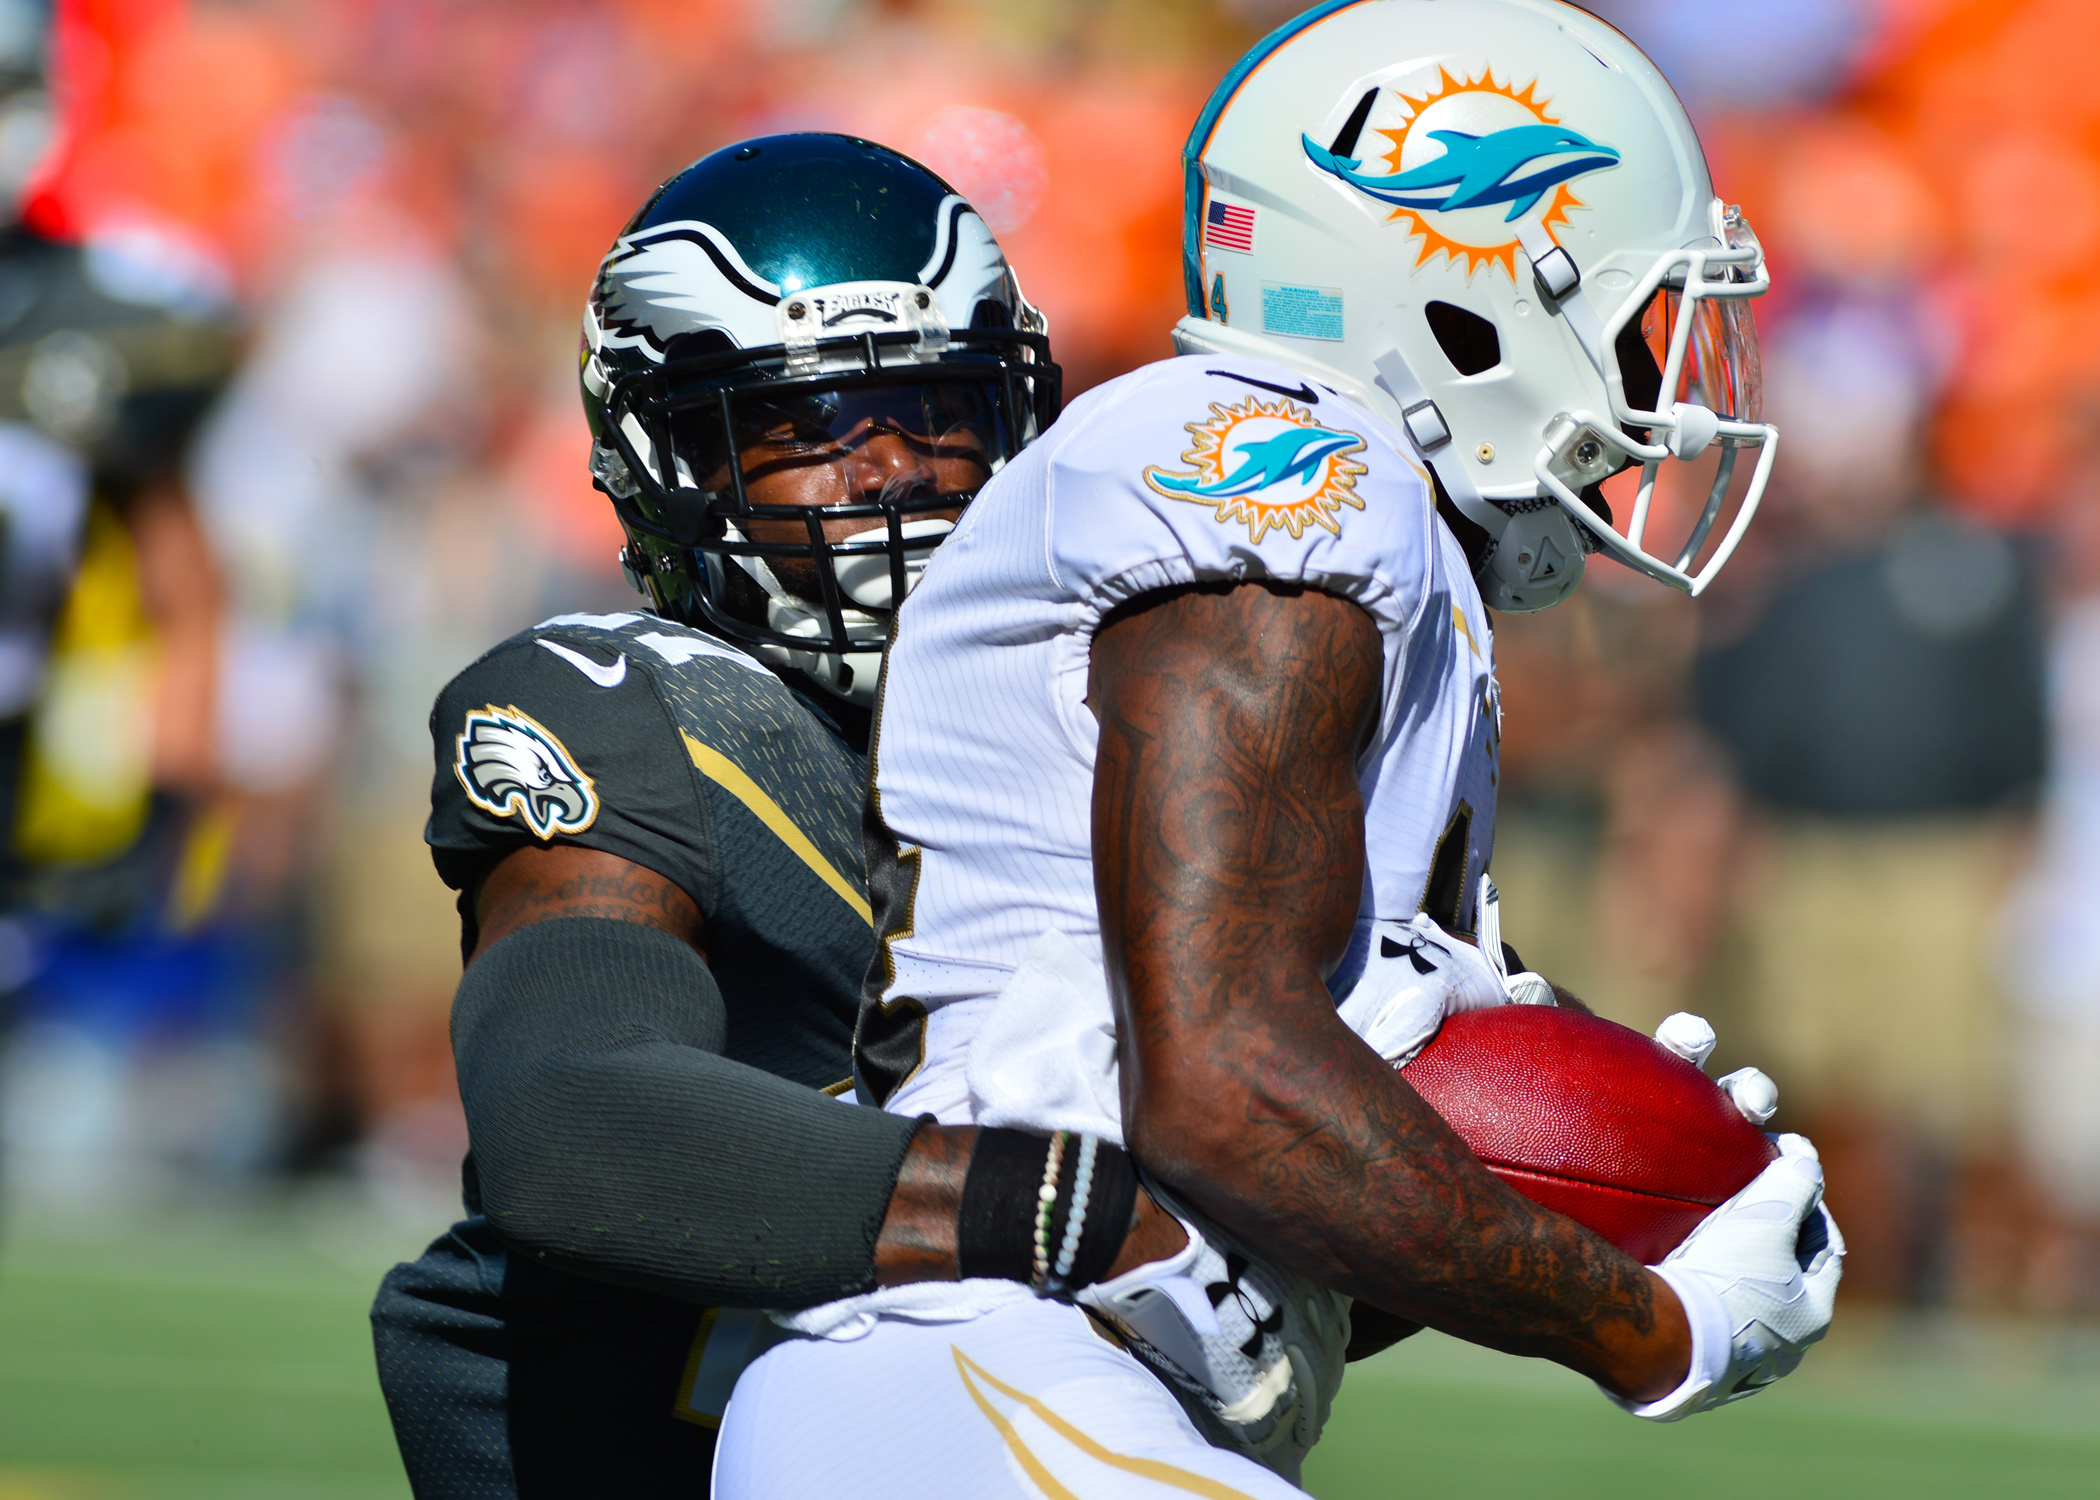 timeless design 9bc33 a5d8f Jarvis Landry - Wikiwand